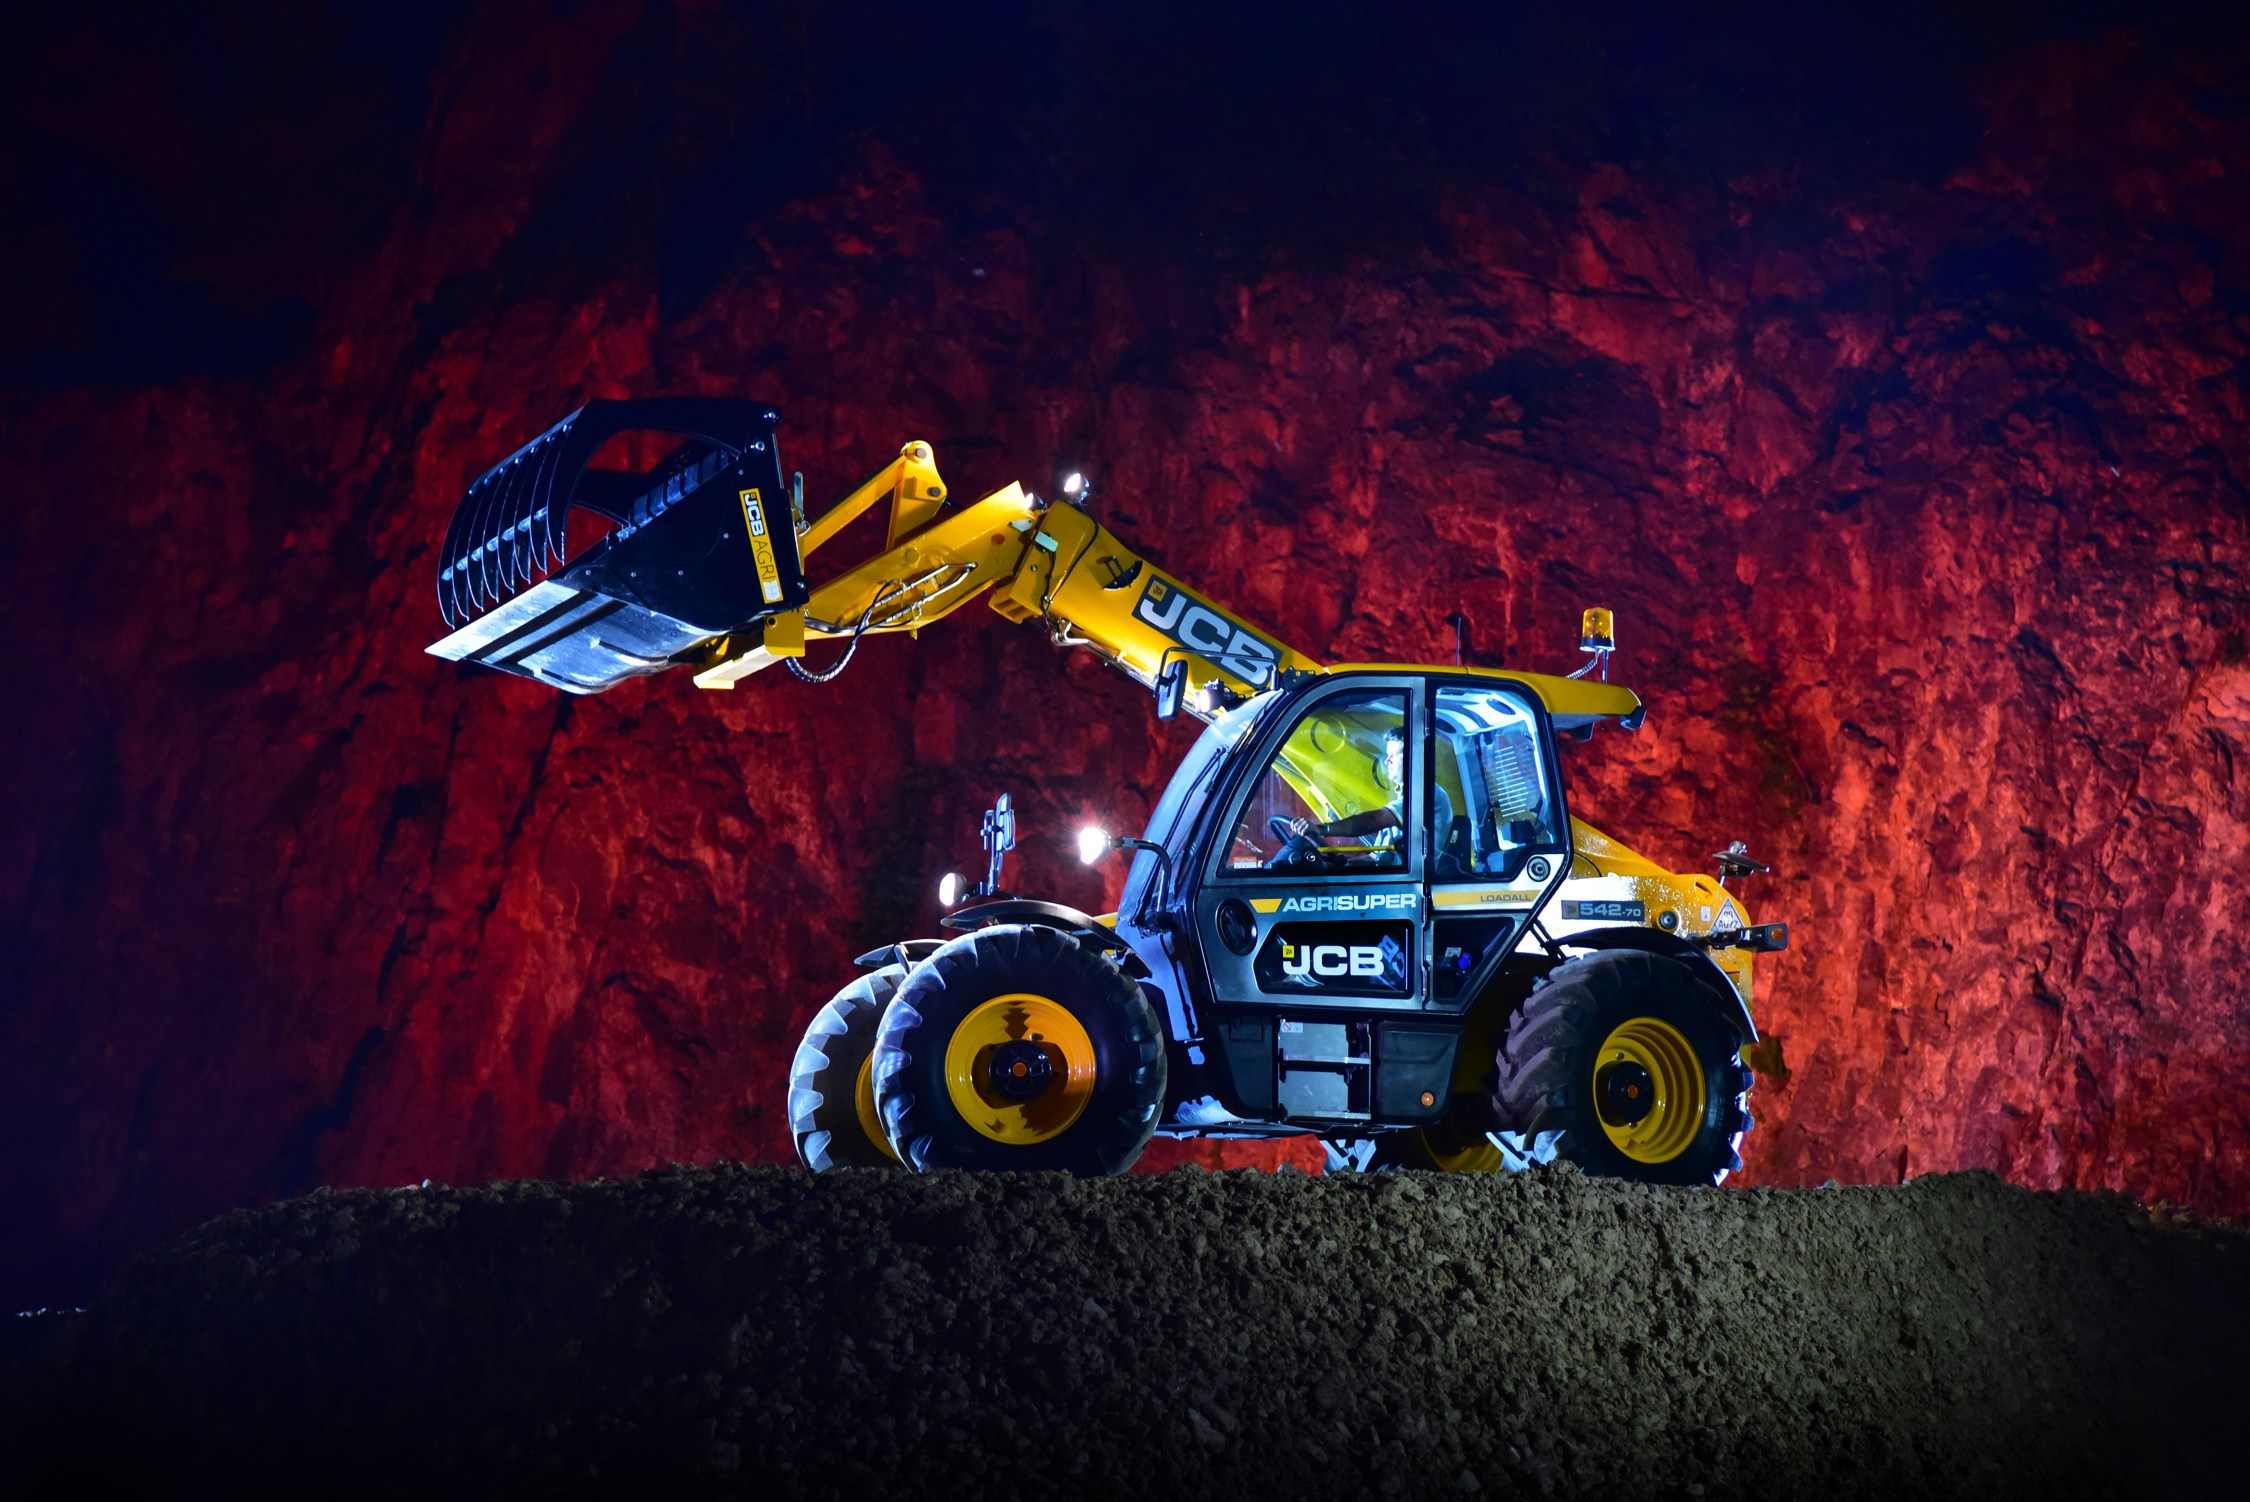 JCB Loadall at night